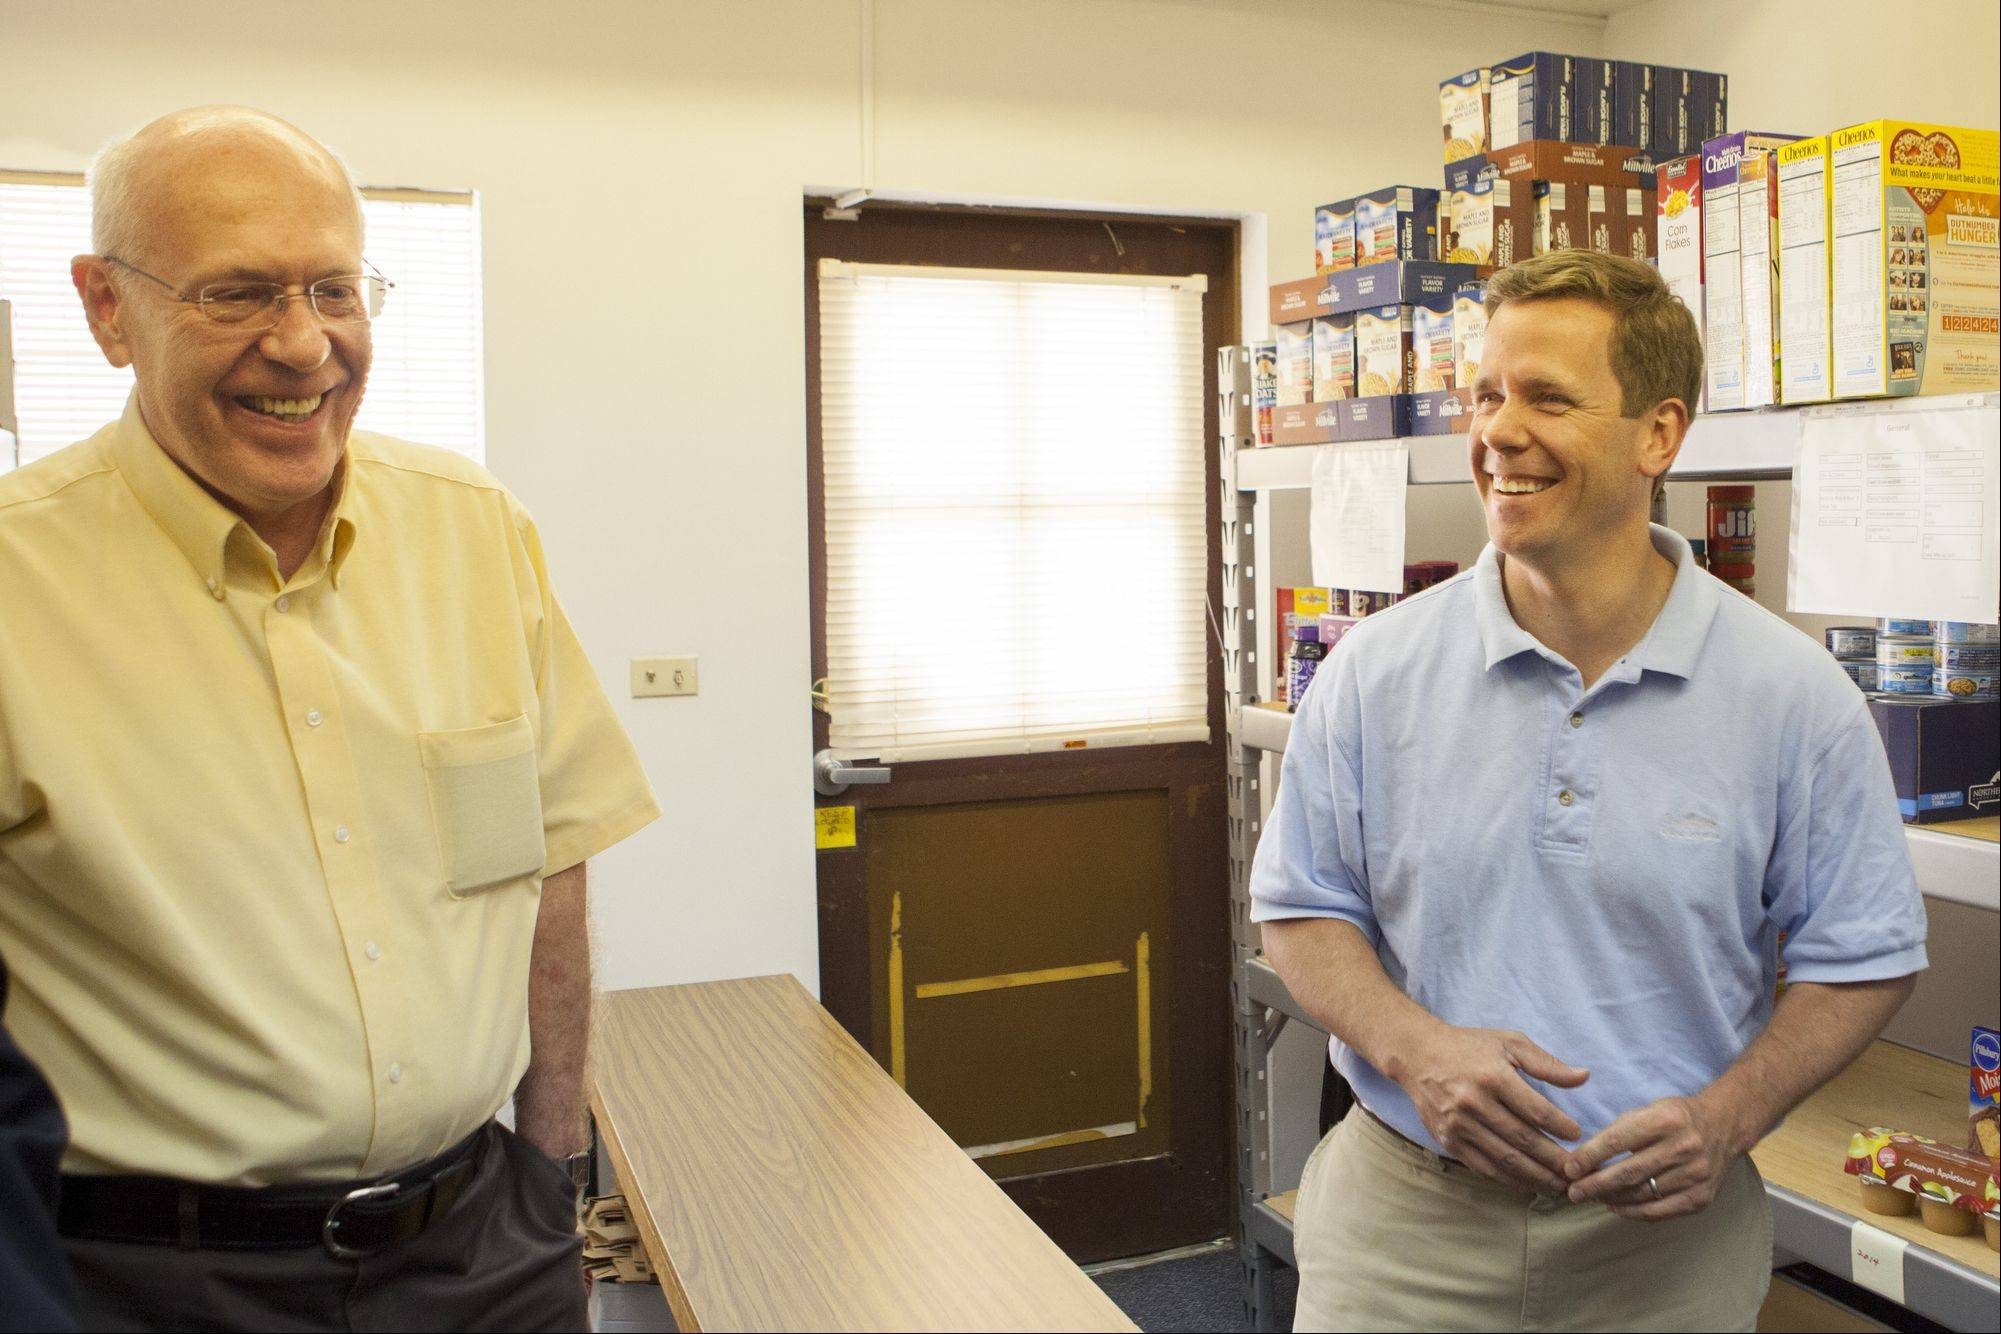 Jim Bradley talks to Congressman Bob Dold about the food and support they are getting for the Wheeling Food Pantry, which opened in September.